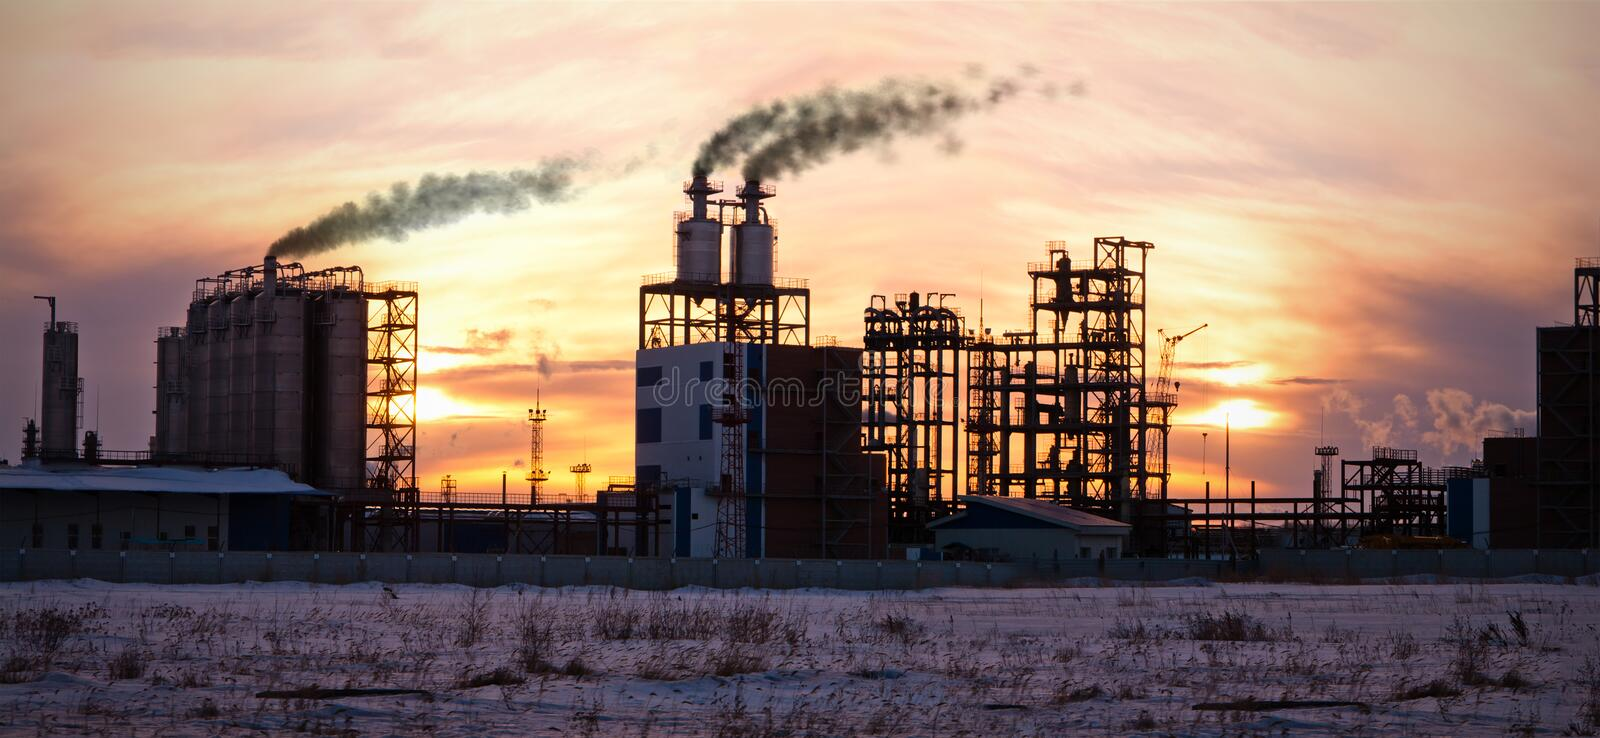 Download Oil Refinery At Sunset. Enviroment Pollution. Royalty Free Stock Photography - Image: 18944737